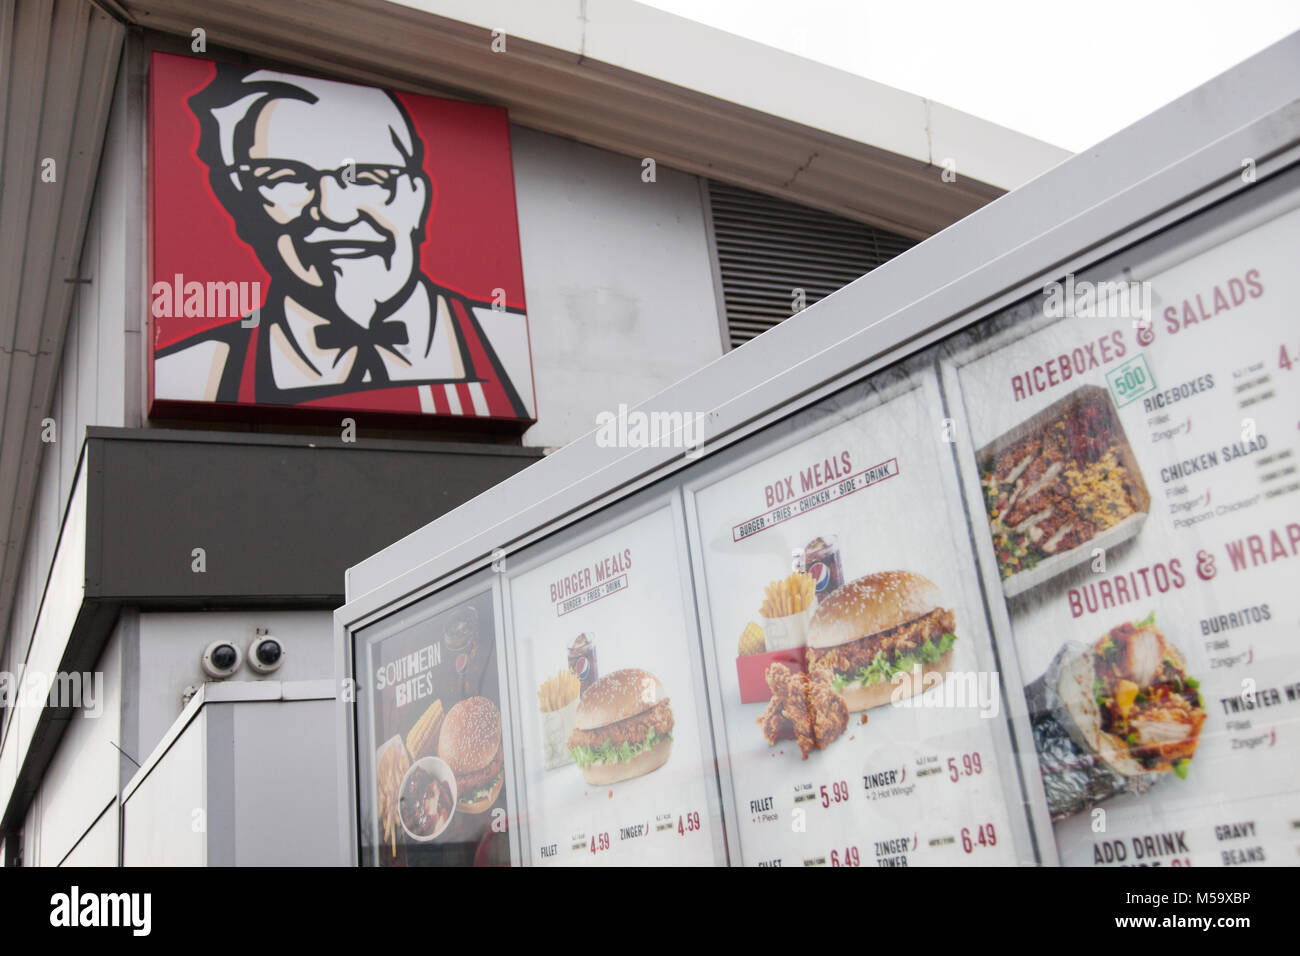 Kfc Delivery Stock Photos & Kfc Delivery Stock Images - Alamy